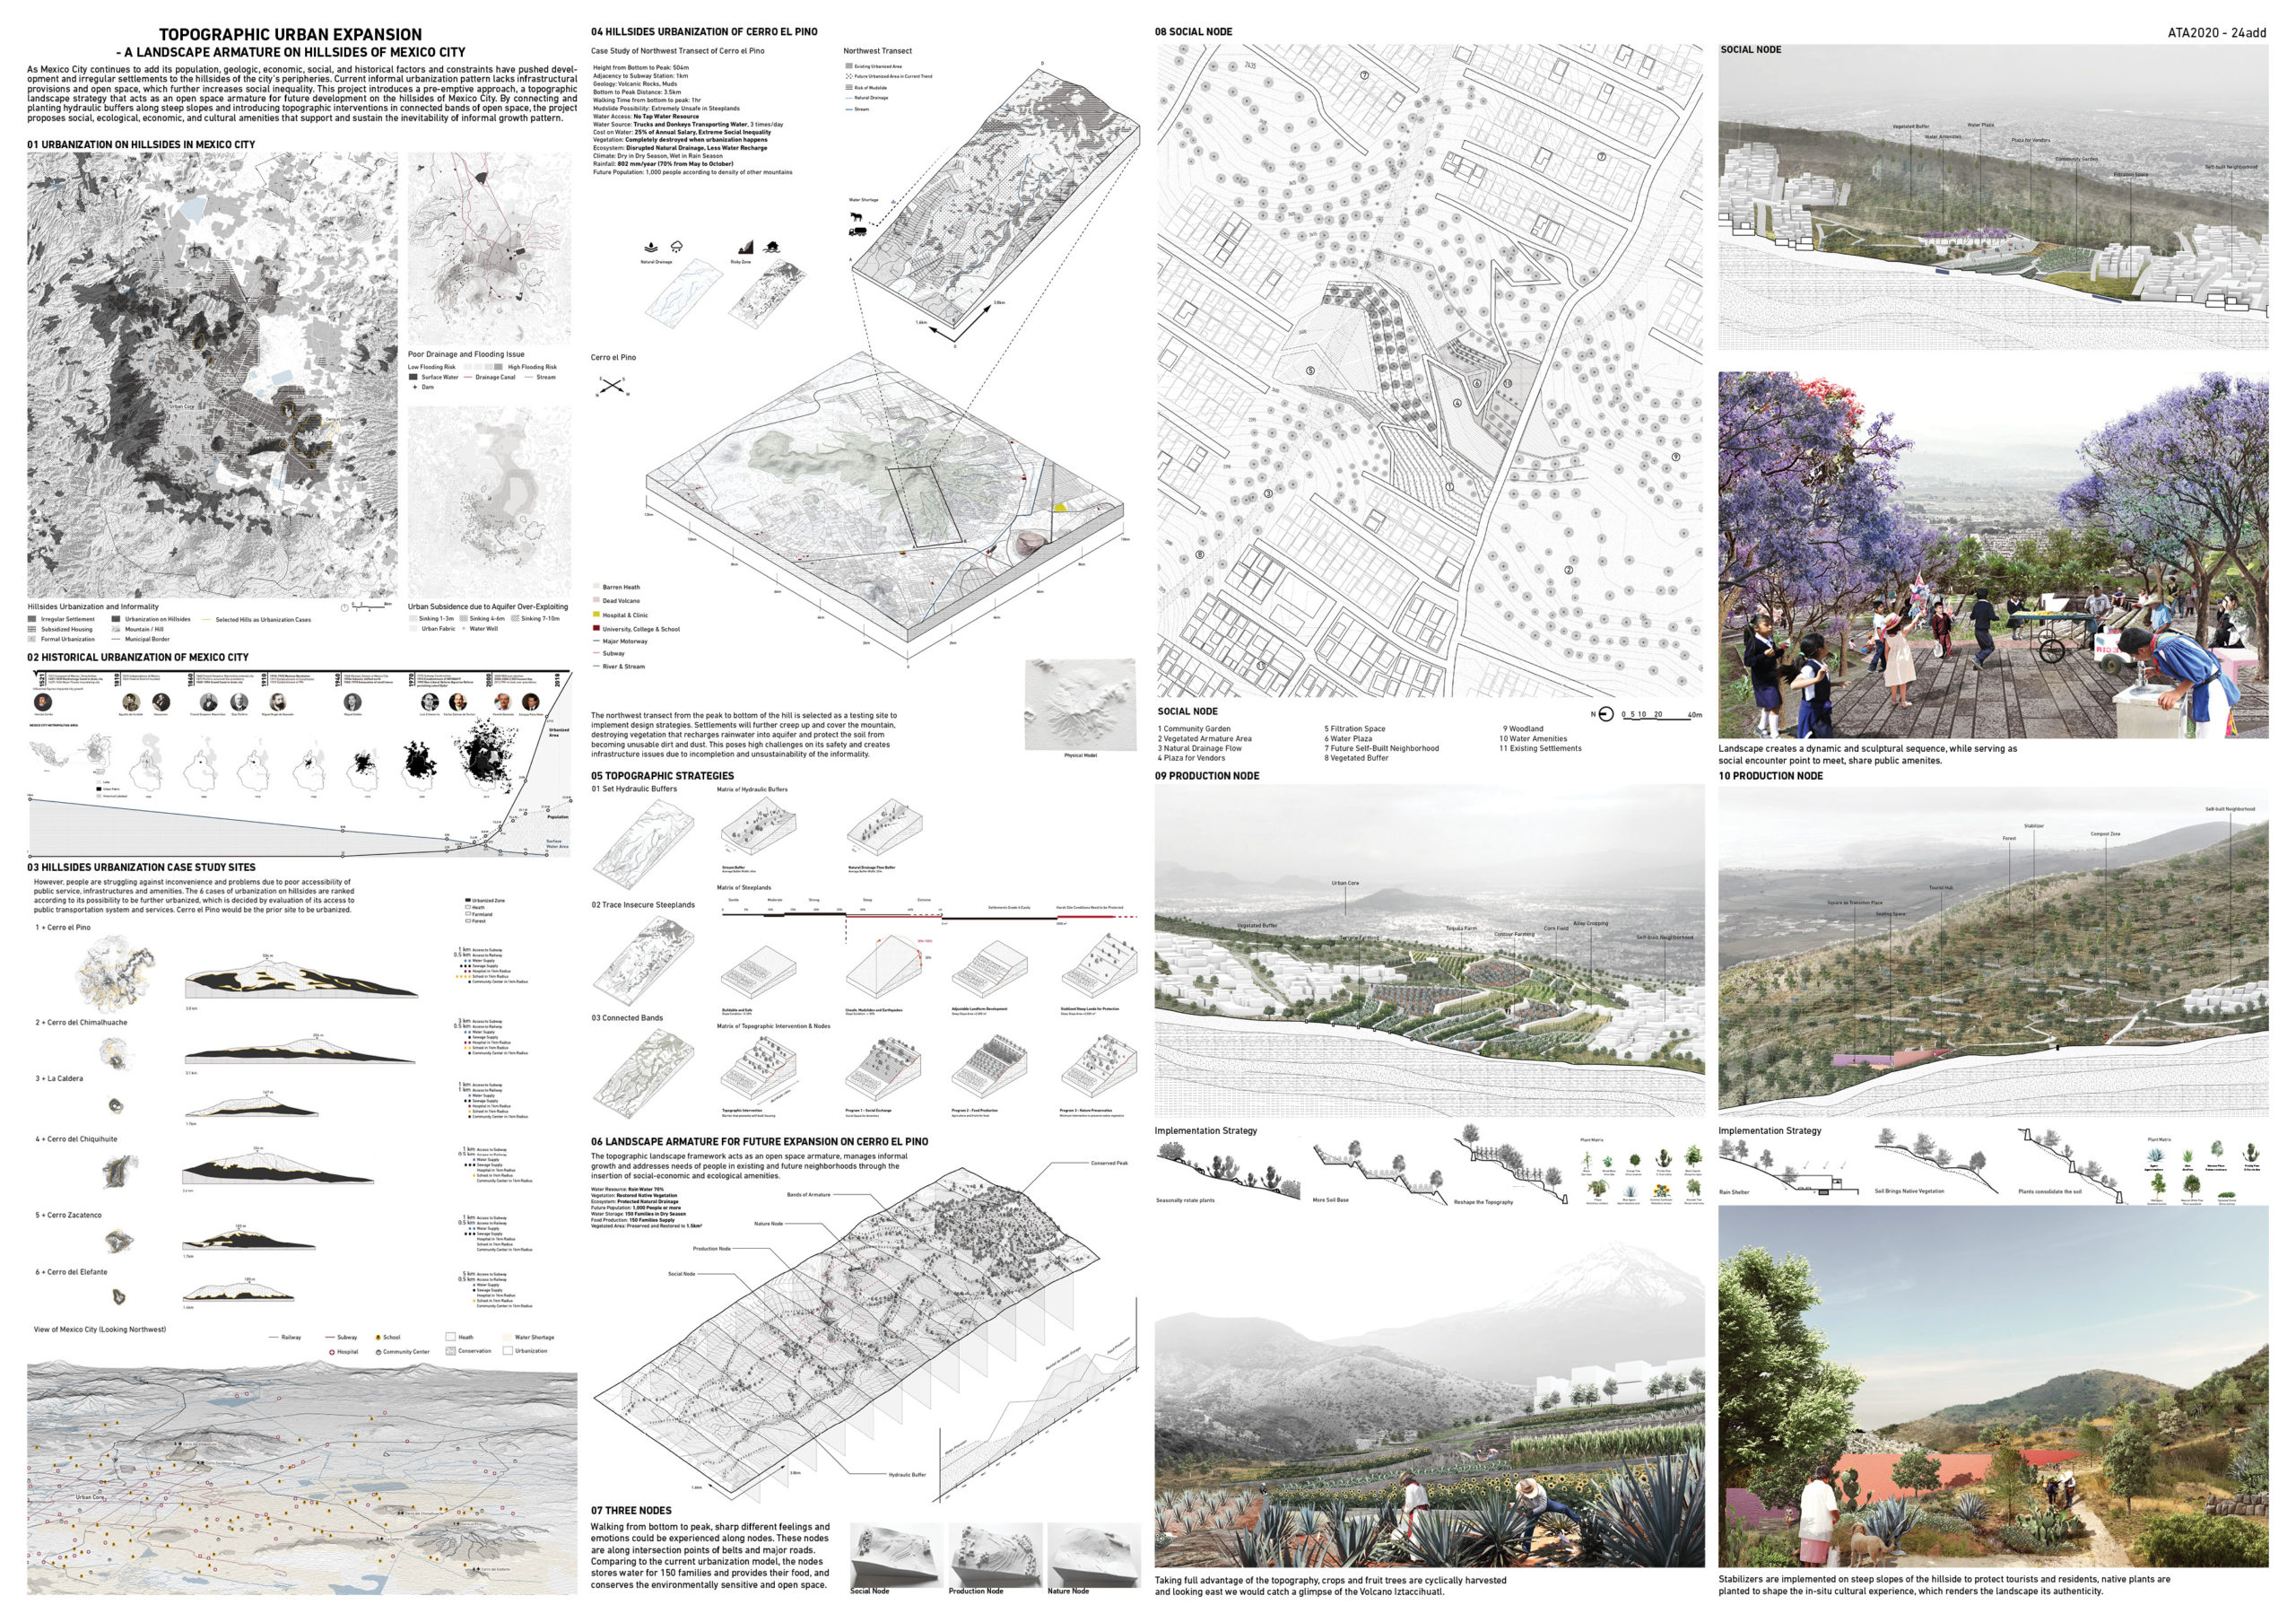 Topographic Urban Expansion – A Landscape Armature on the Hillsides of Mexico City Board